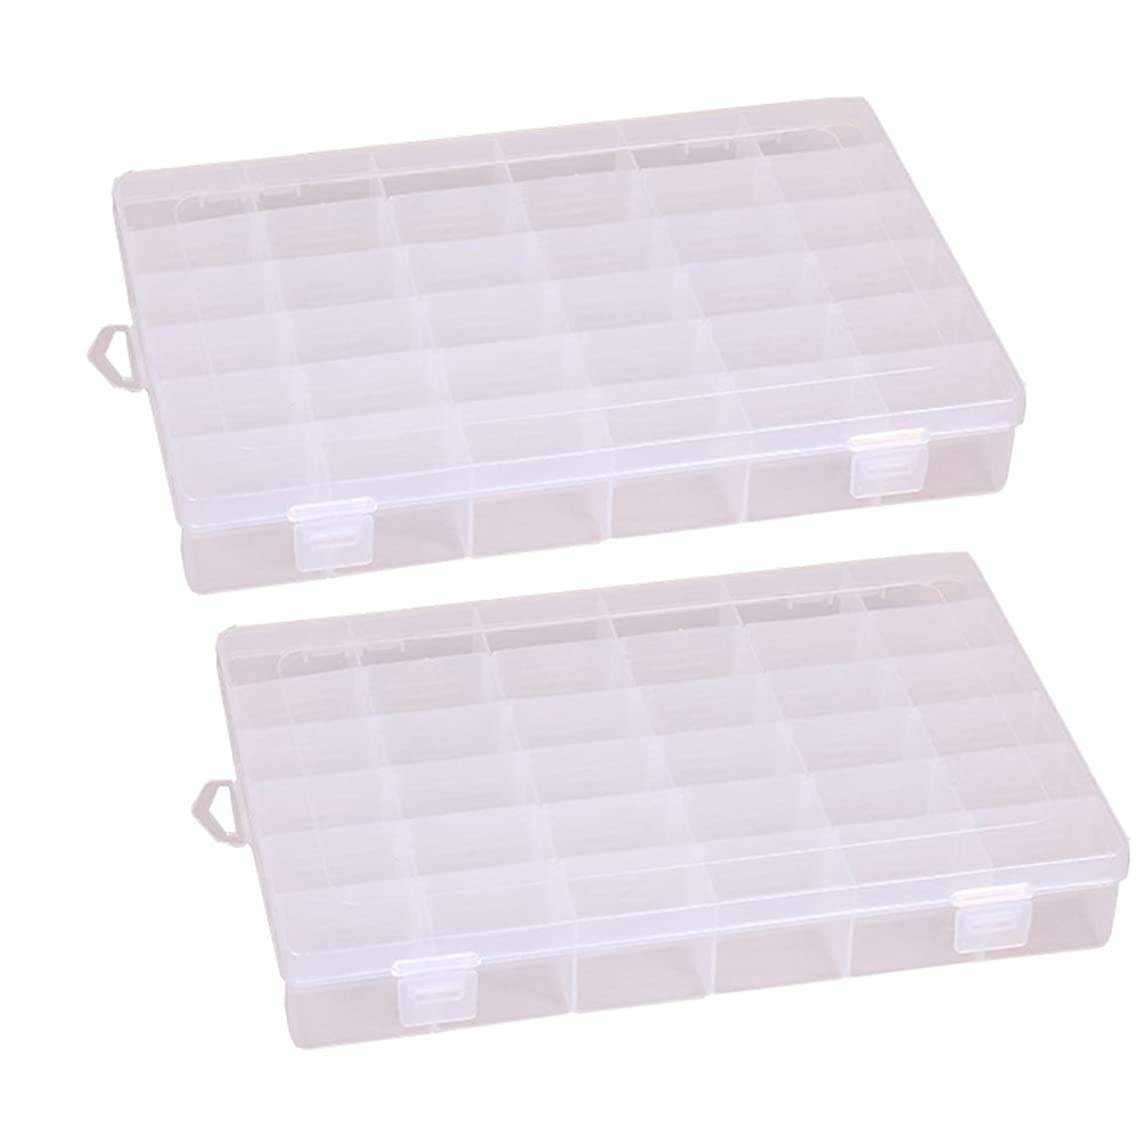 Richohome 36 Grids Adjustable Jewelry Bead Organizer Box Storage Container Case,Pack of 2